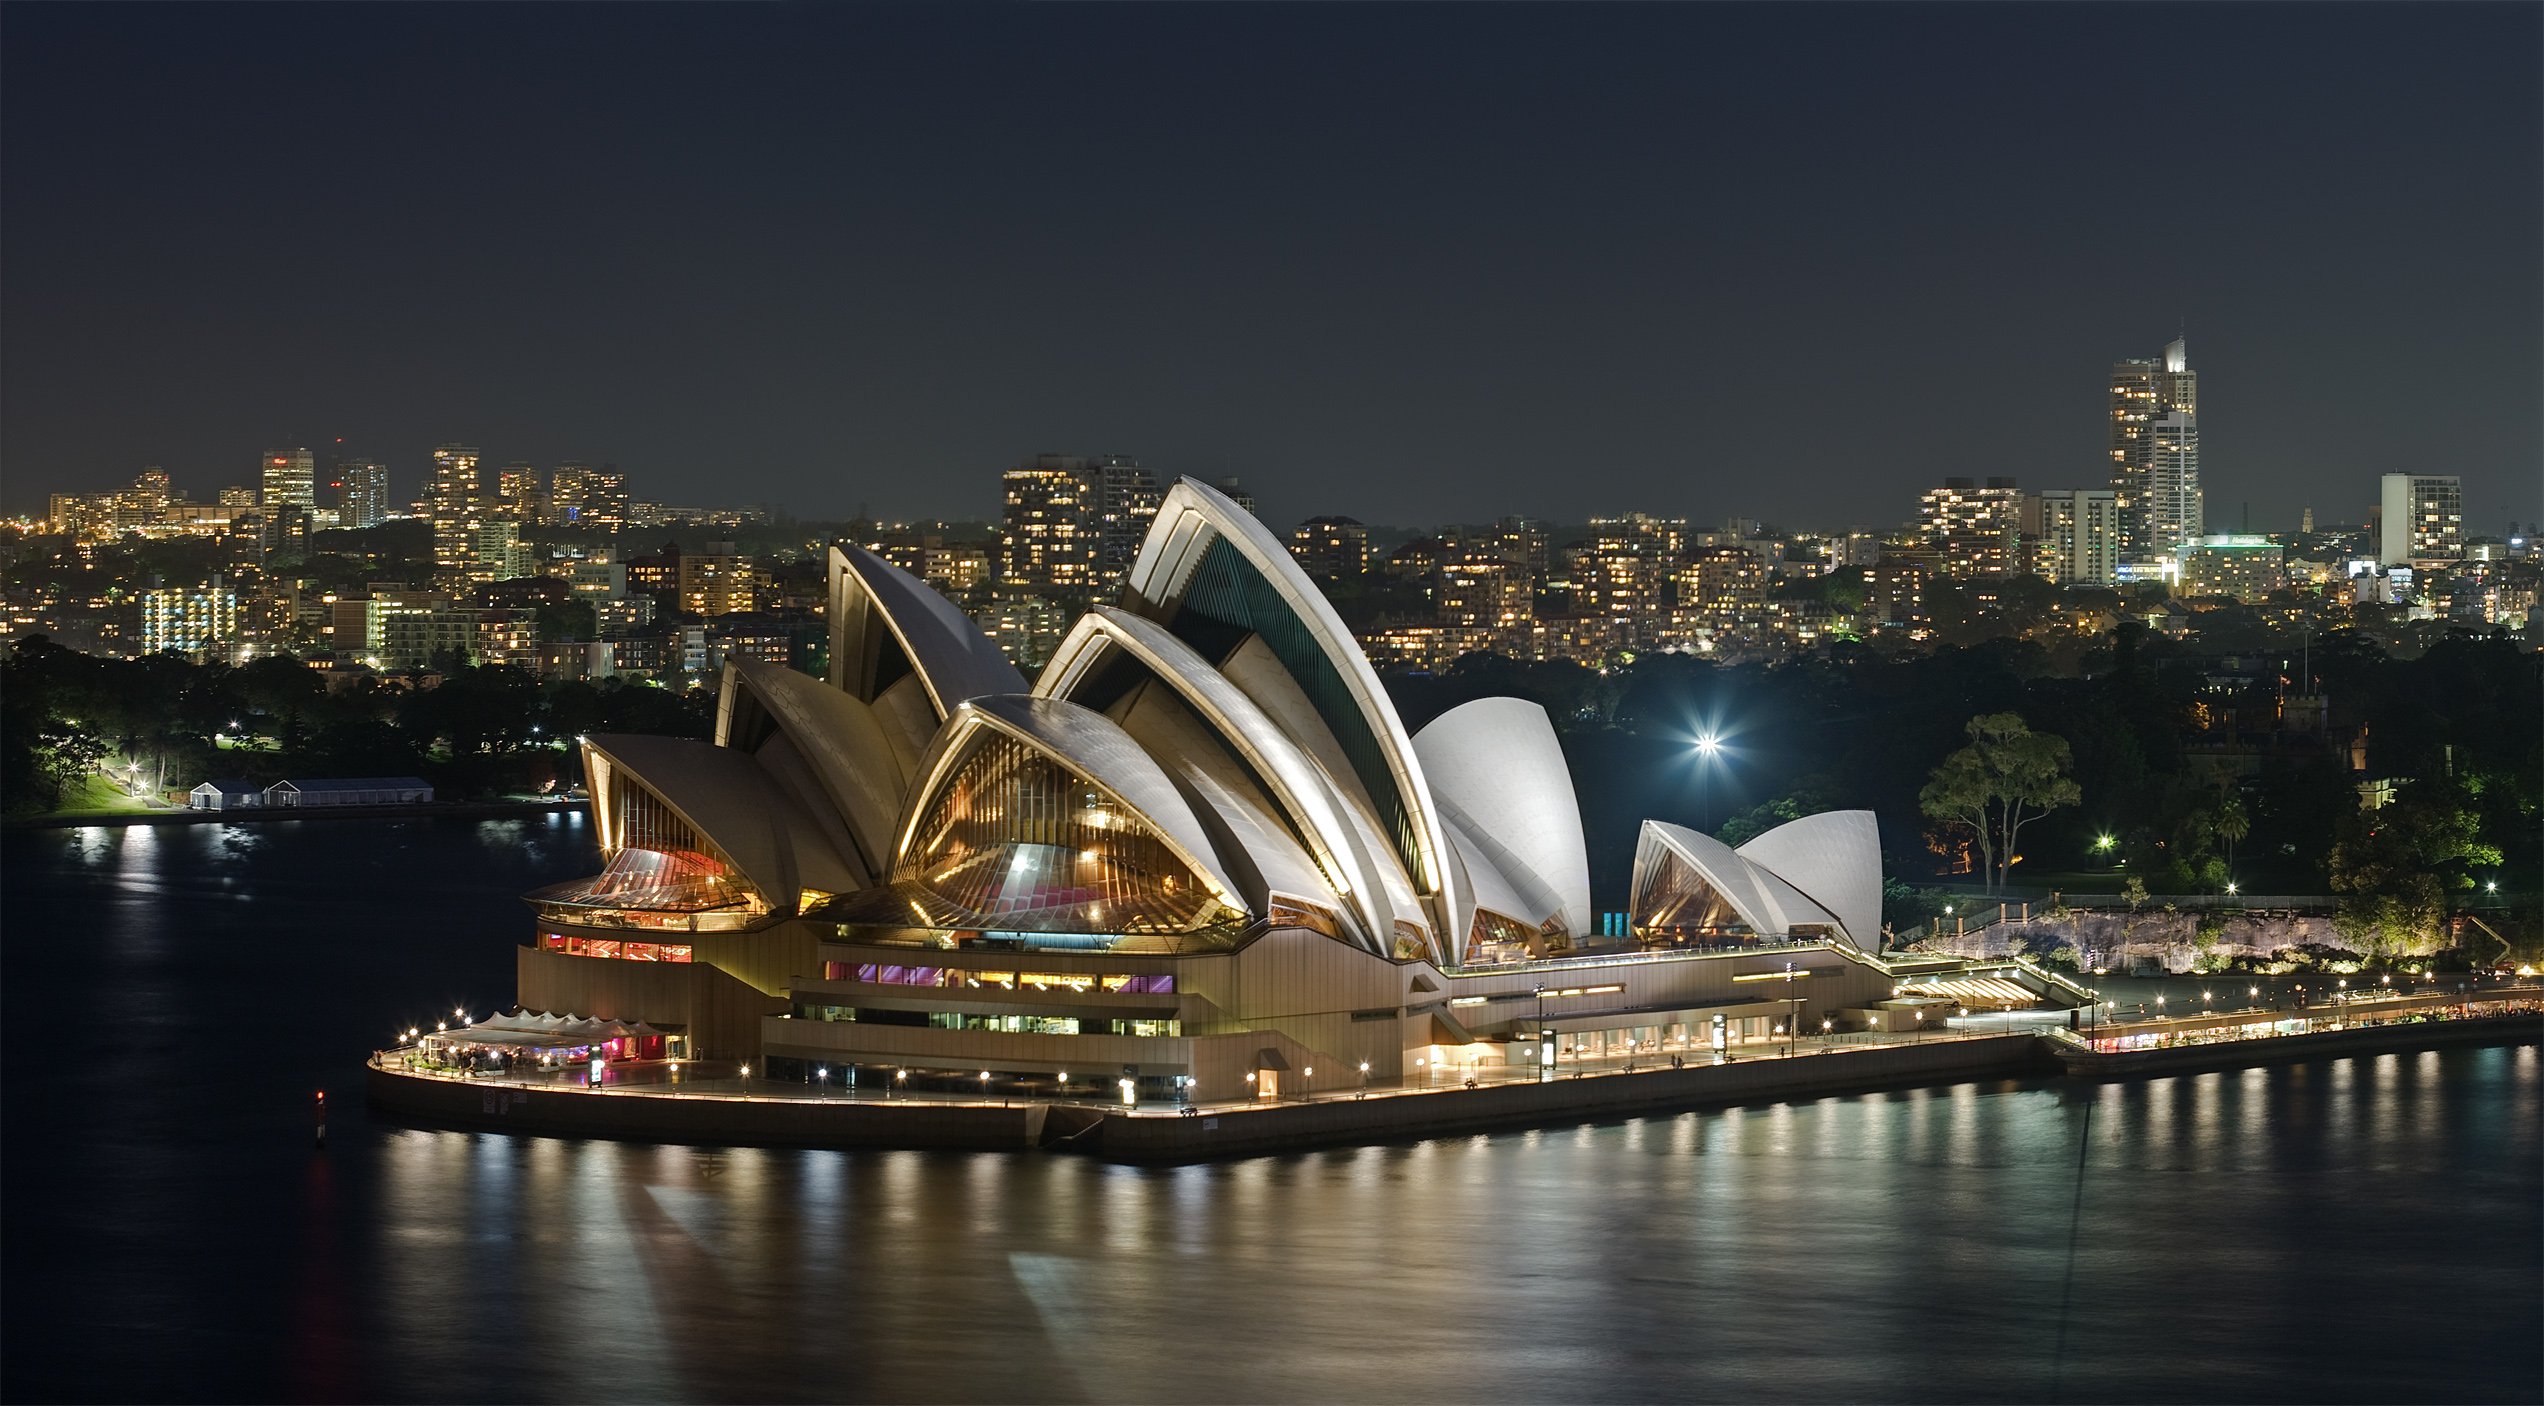 https://i1.wp.com/upload.wikimedia.org/wikipedia/commons/7/7c/Sydney_Opera_House_-_Dec_2008.jpg